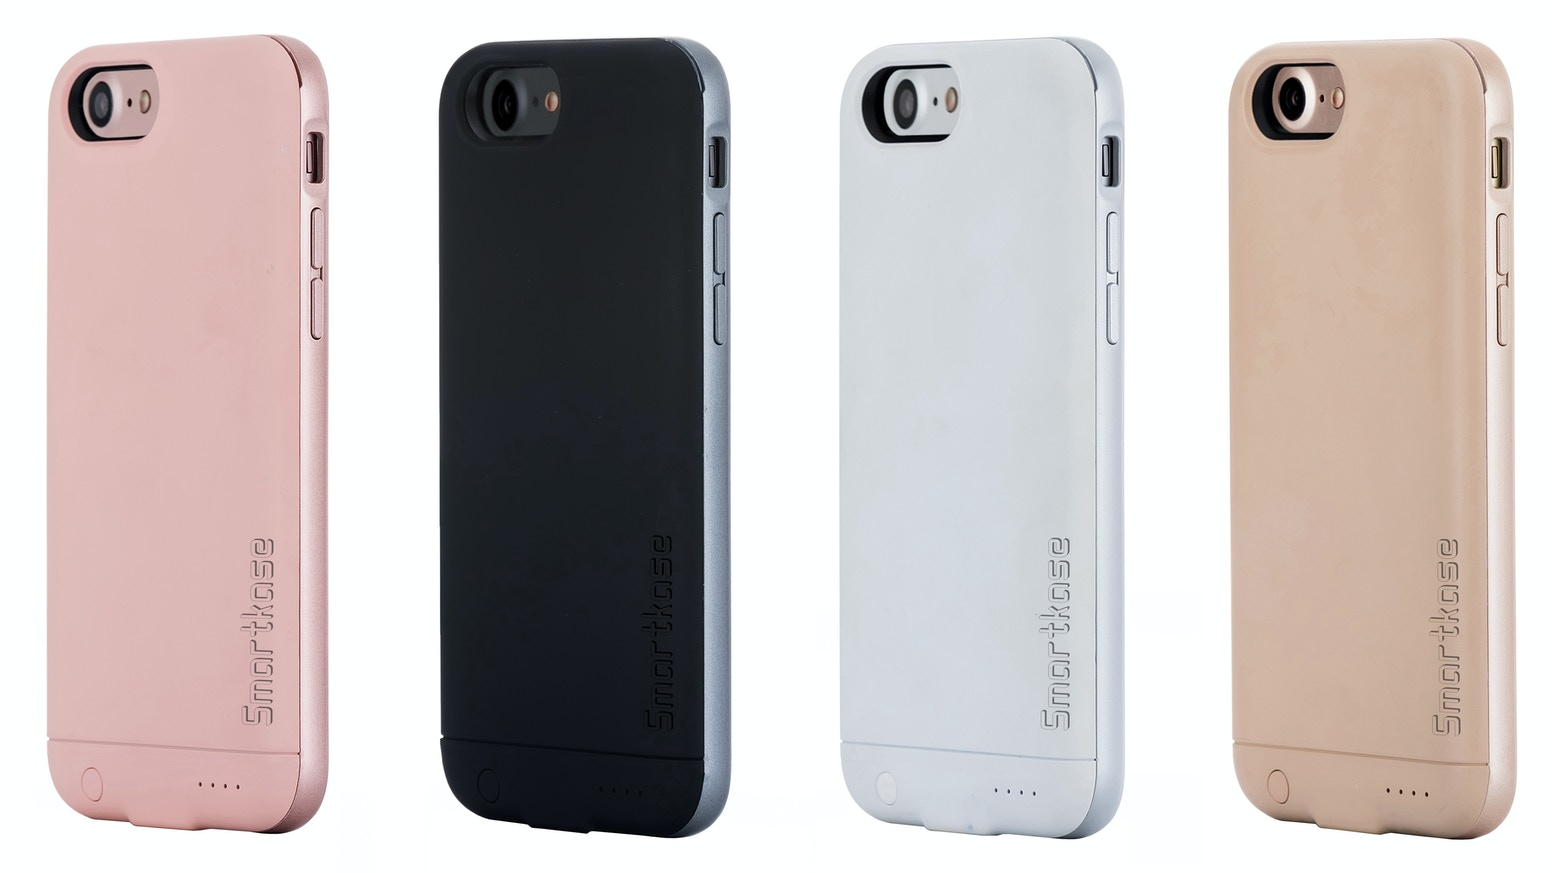 new concept 61e13 ed444 Smartkase for iPhone 7 - Dual Sim +Memory Card +Battery Case by ...